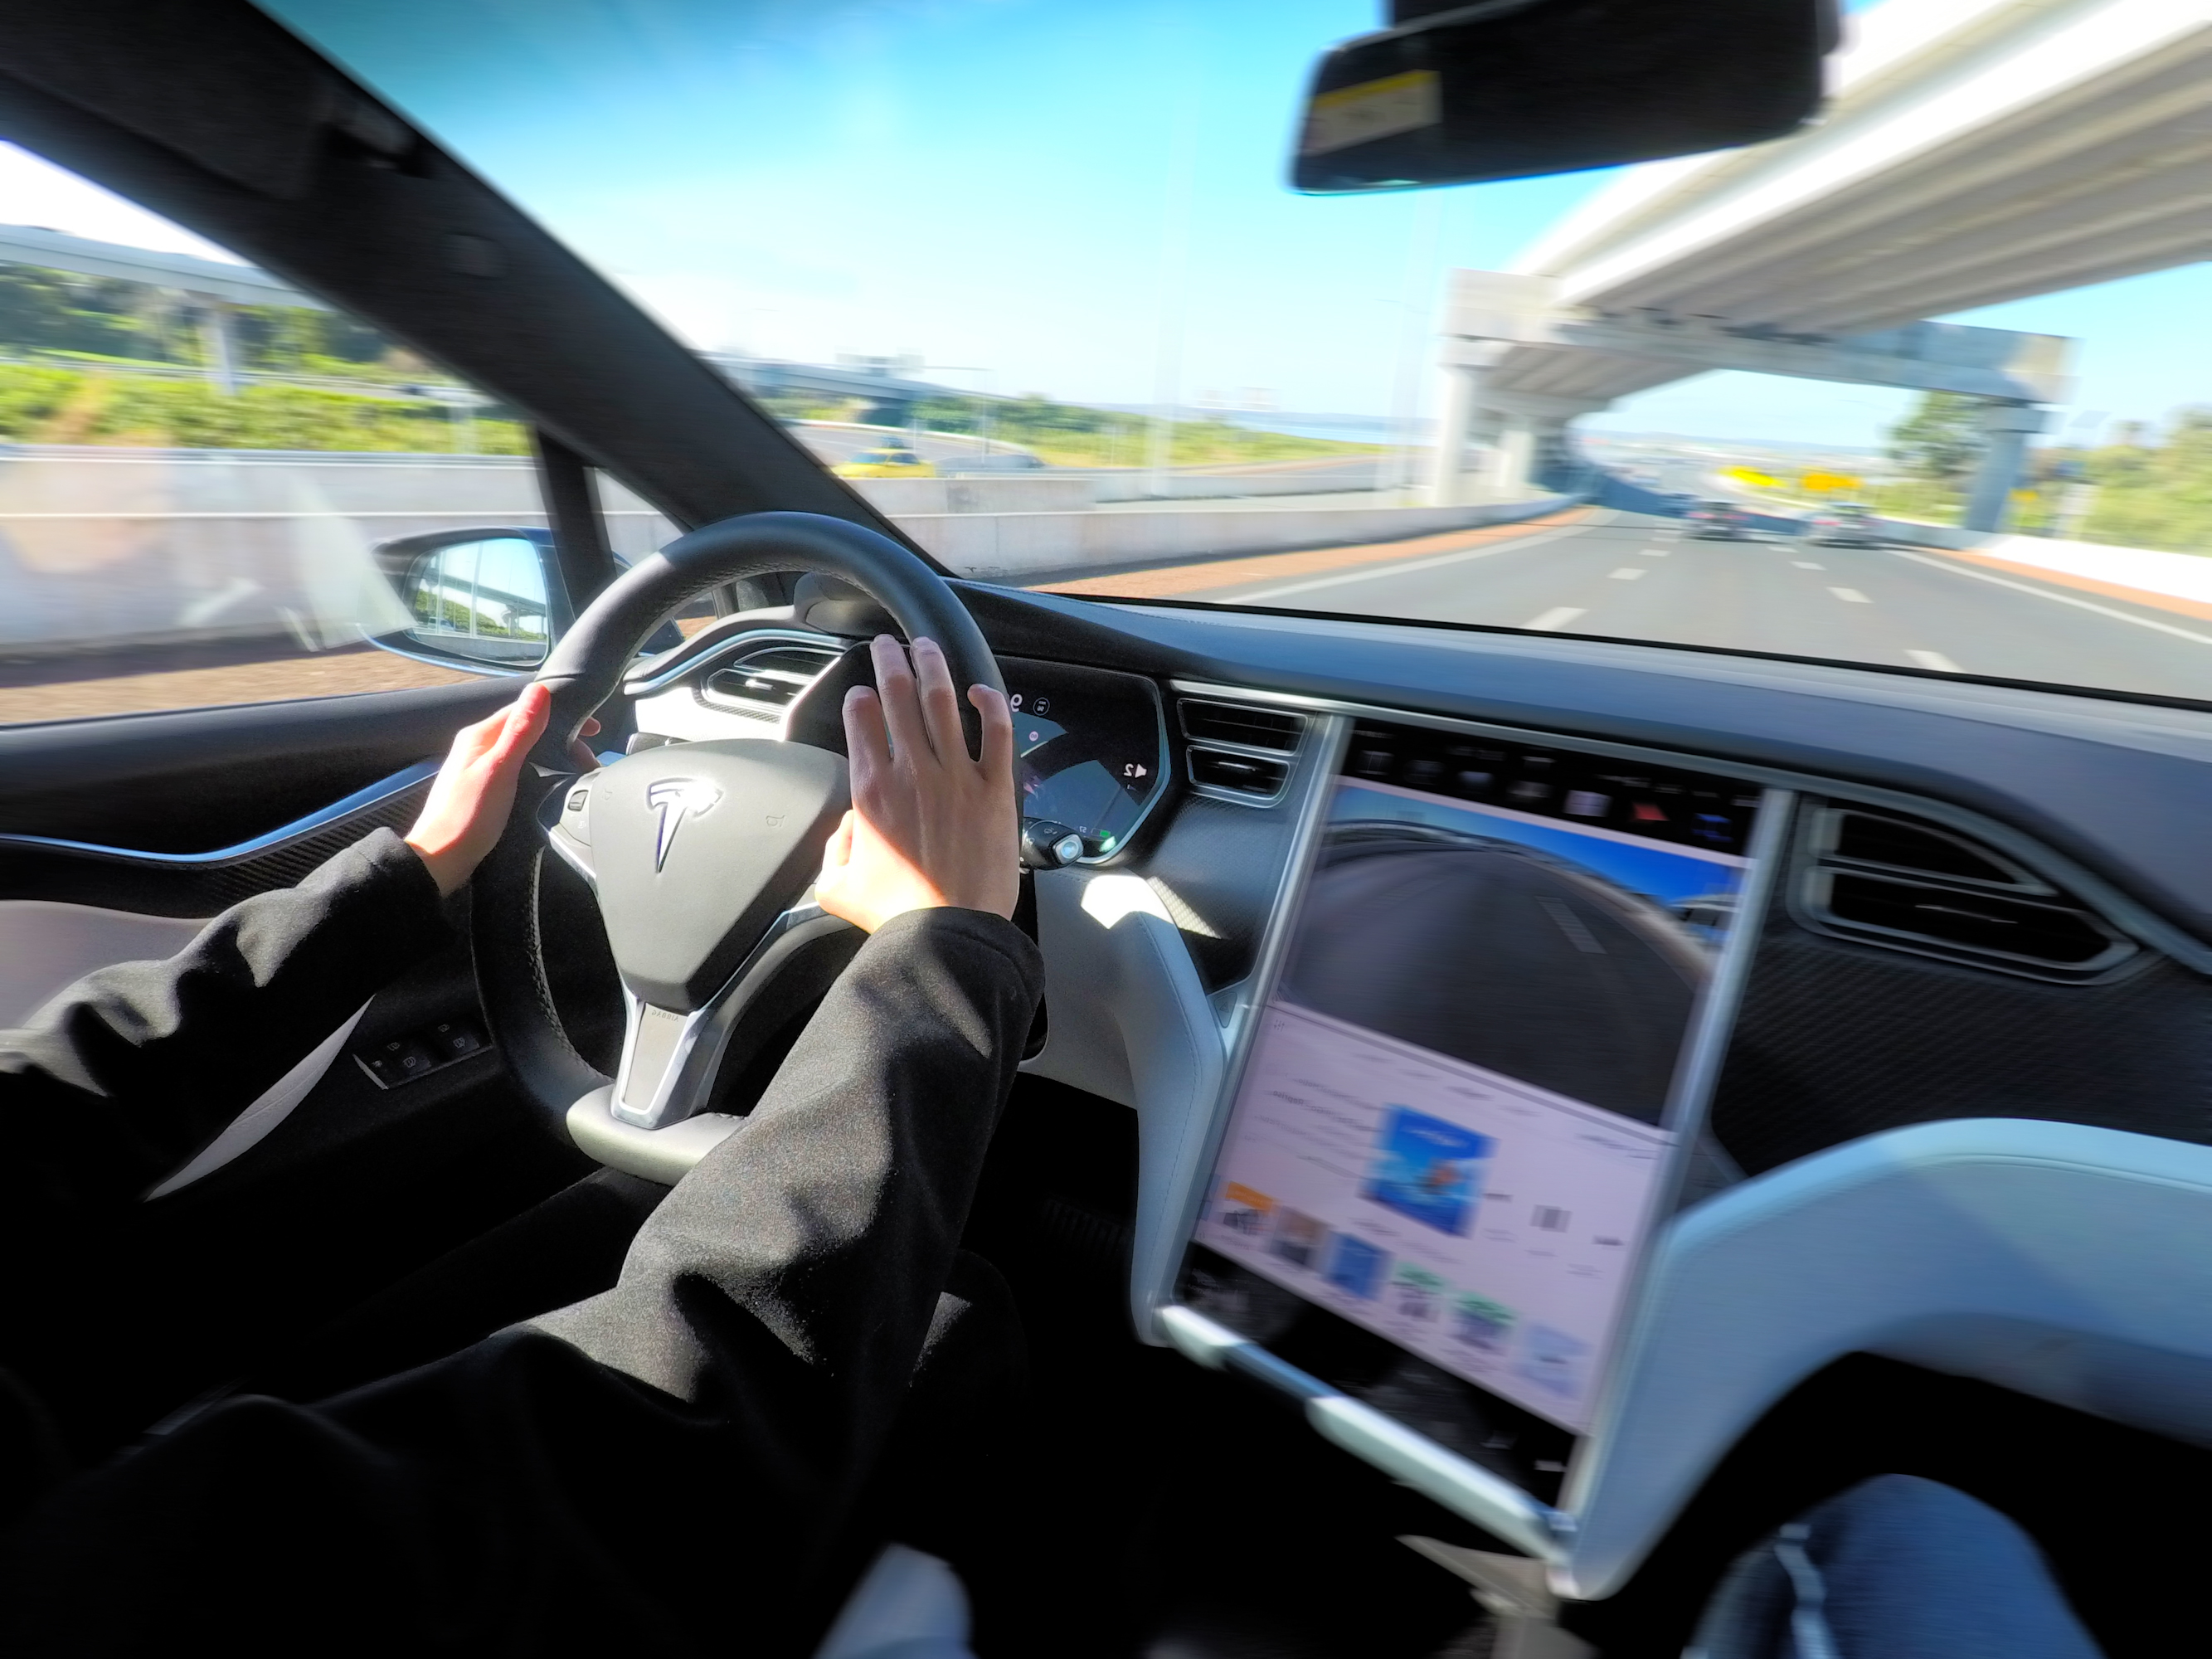 Repairer: Test-driving vehicle with ADAS should be 'mandatory